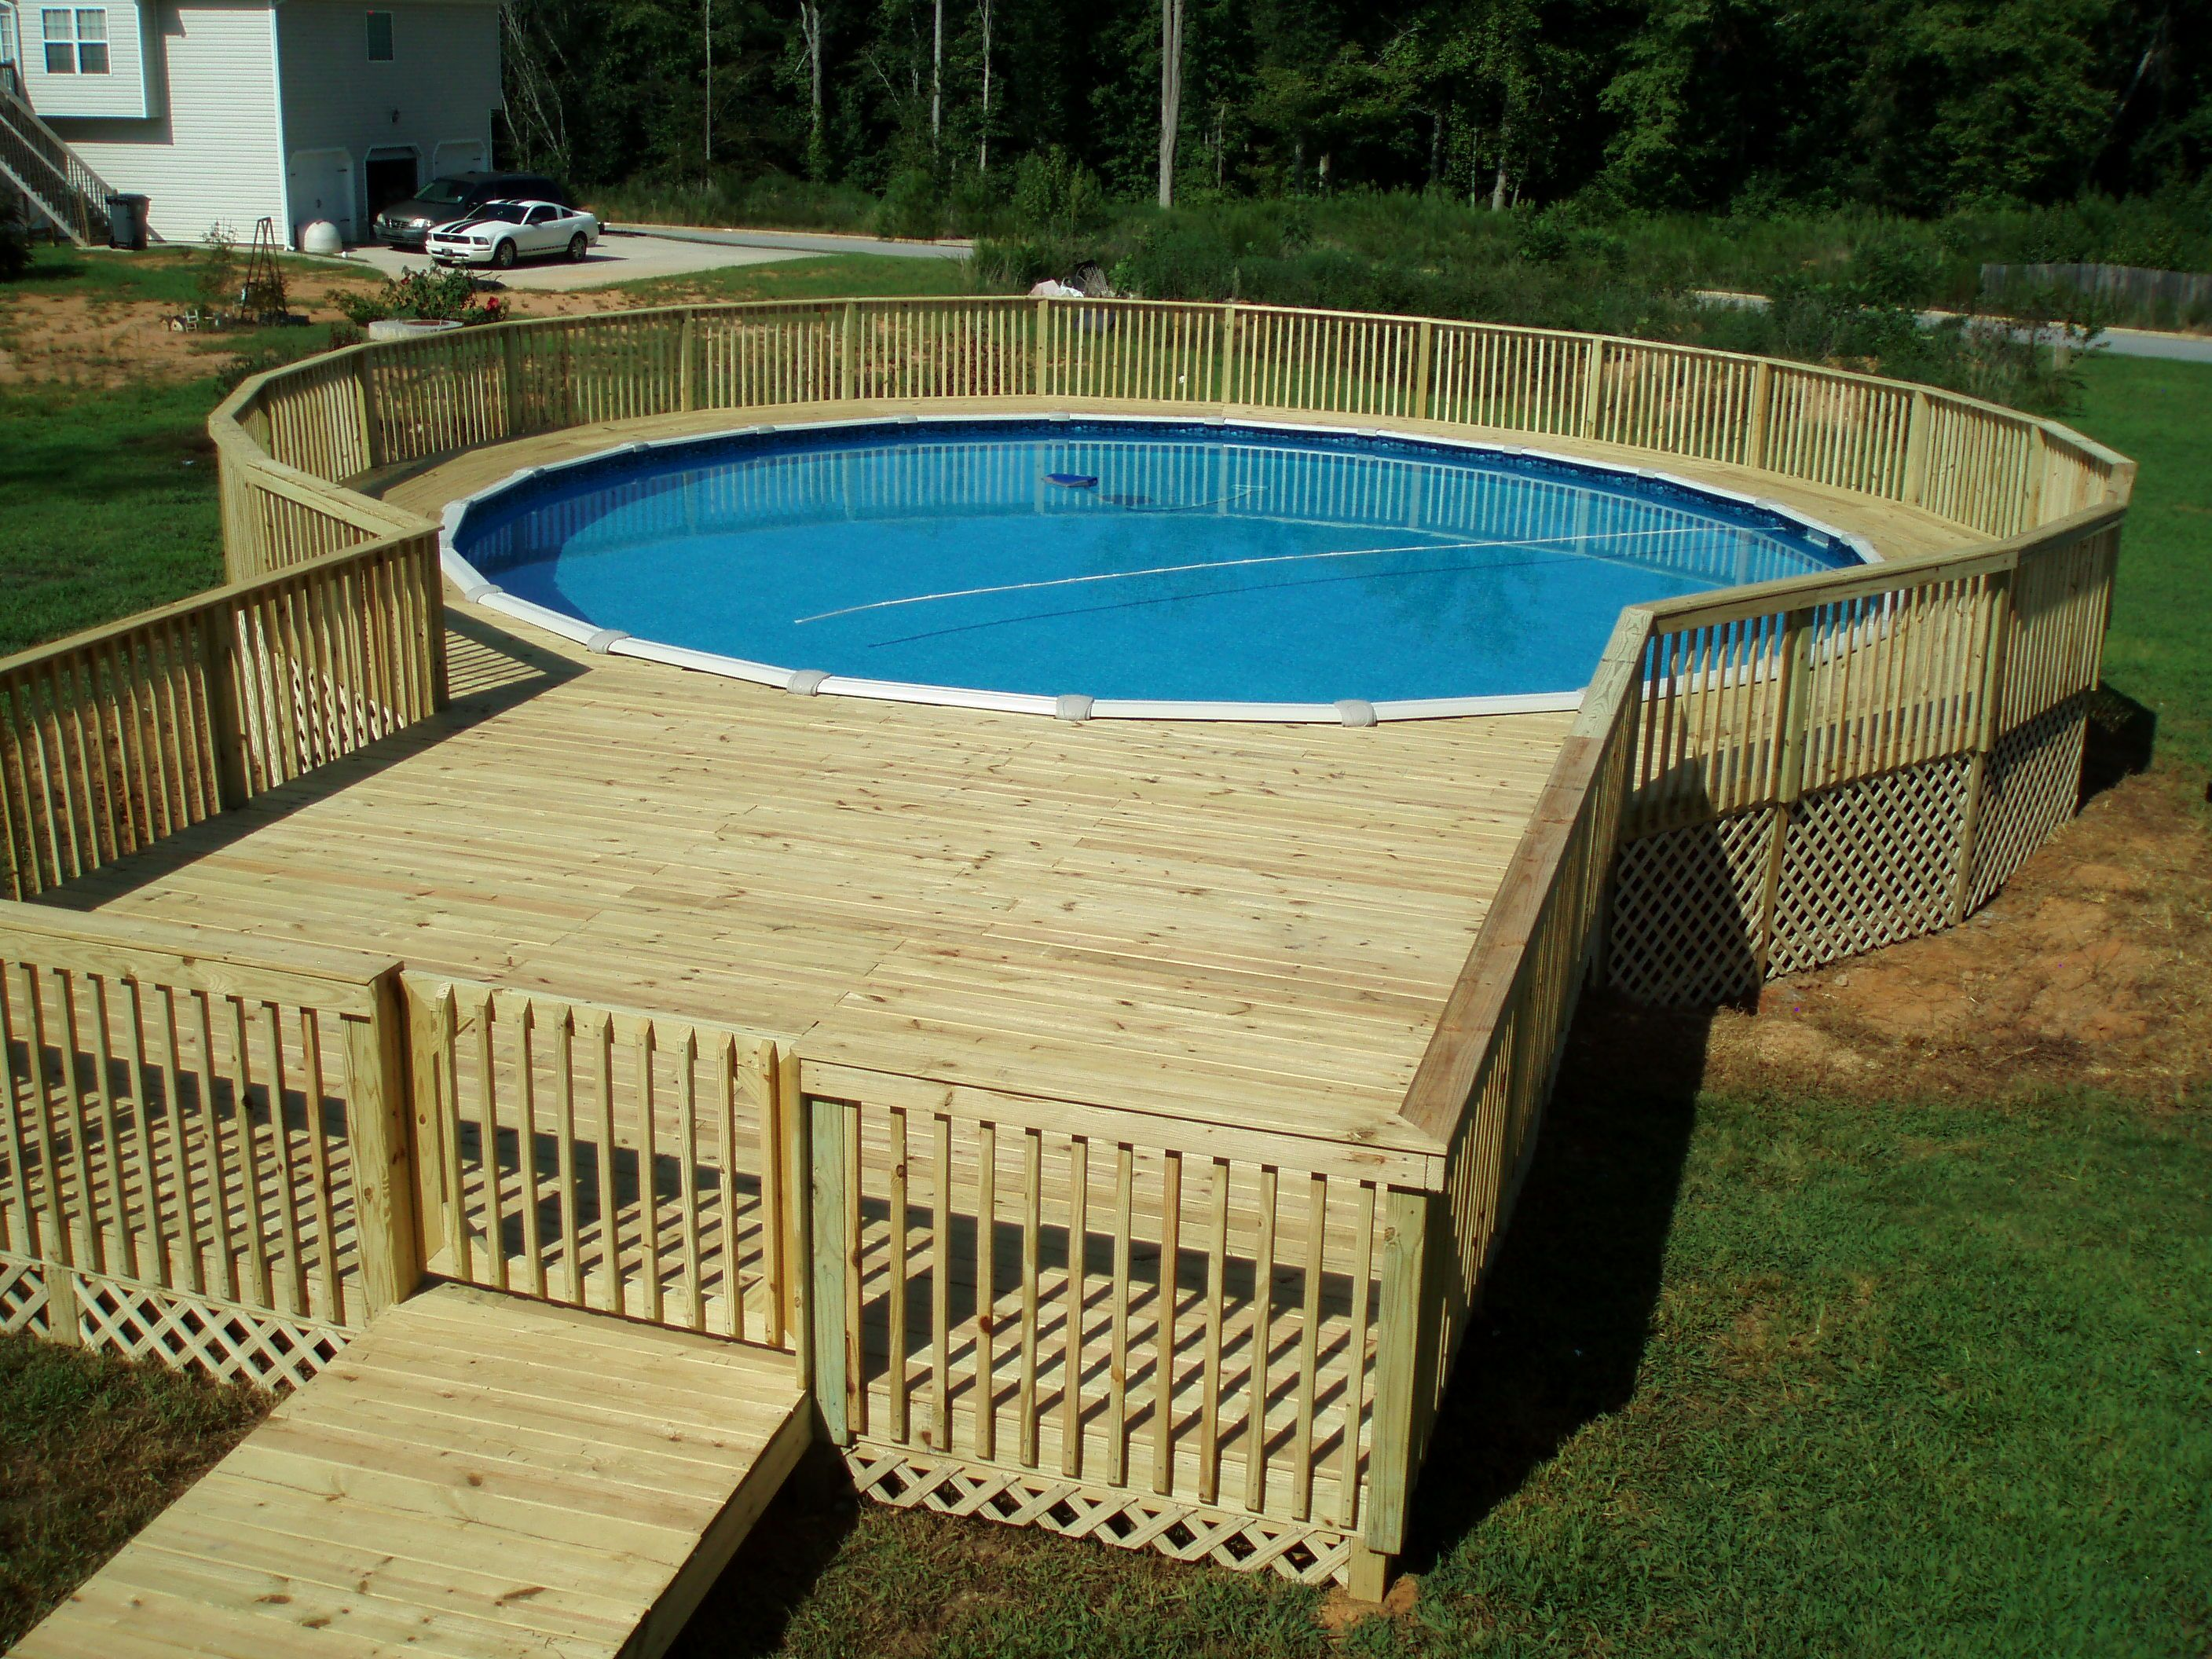 Decks Porches Pool Deck Plans Backyard Pool Backyard Pool